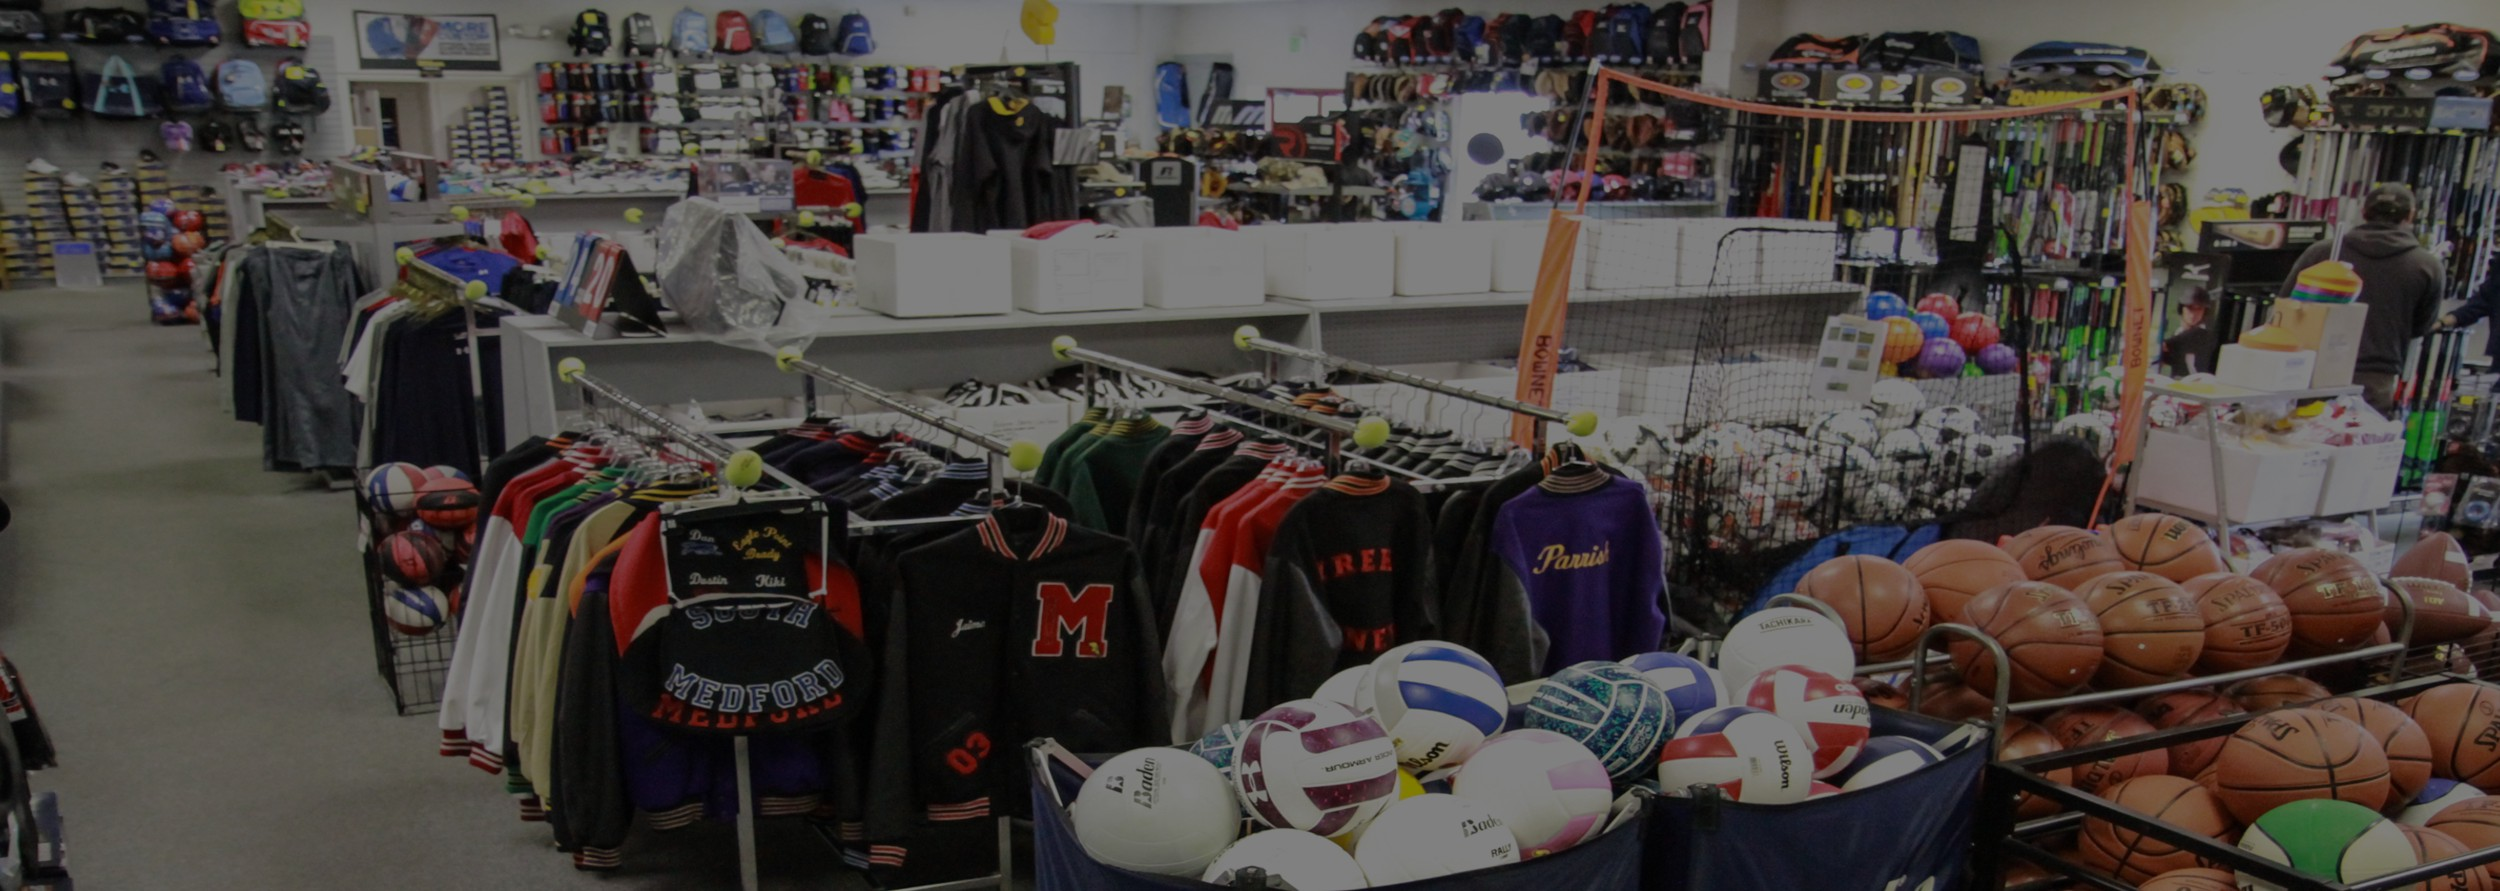 images/slide/best-sports-supply-store-medford-oregon.jpg